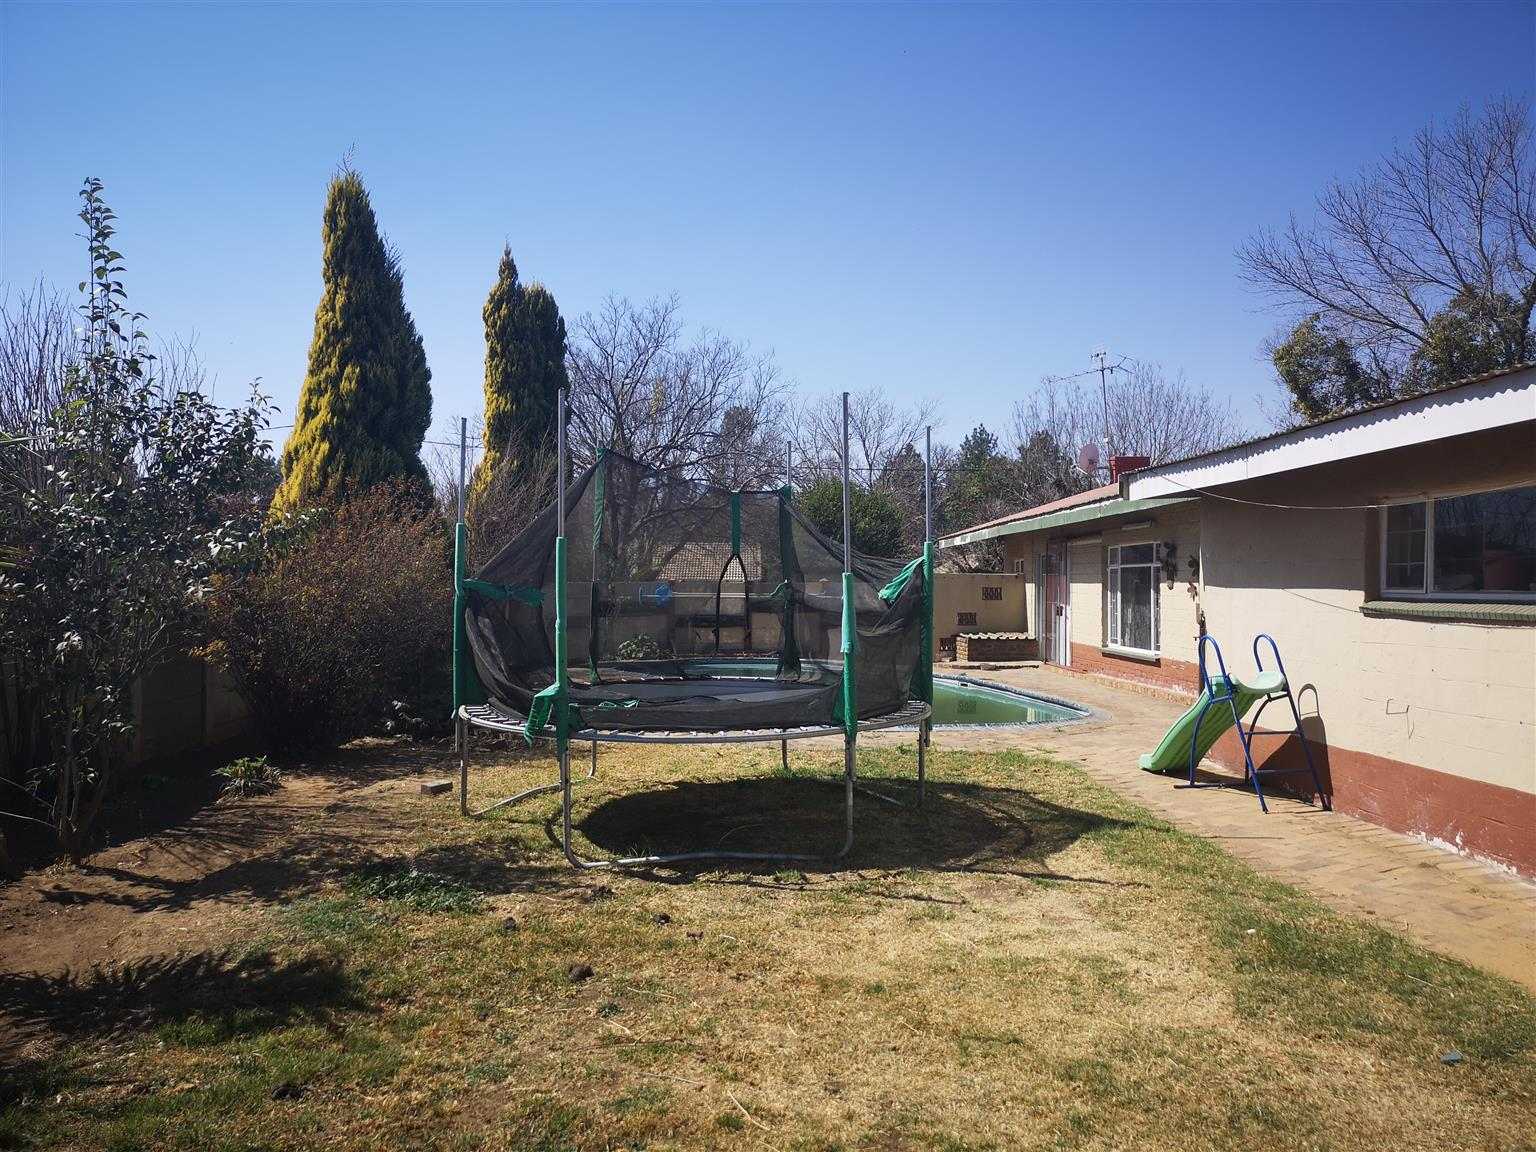 Immigrating... For Sale by Owner! Spacious Full of potential 3 Bedroom House for Sale in Miederpark, Potchefstroom with borehole & Swimming pool!